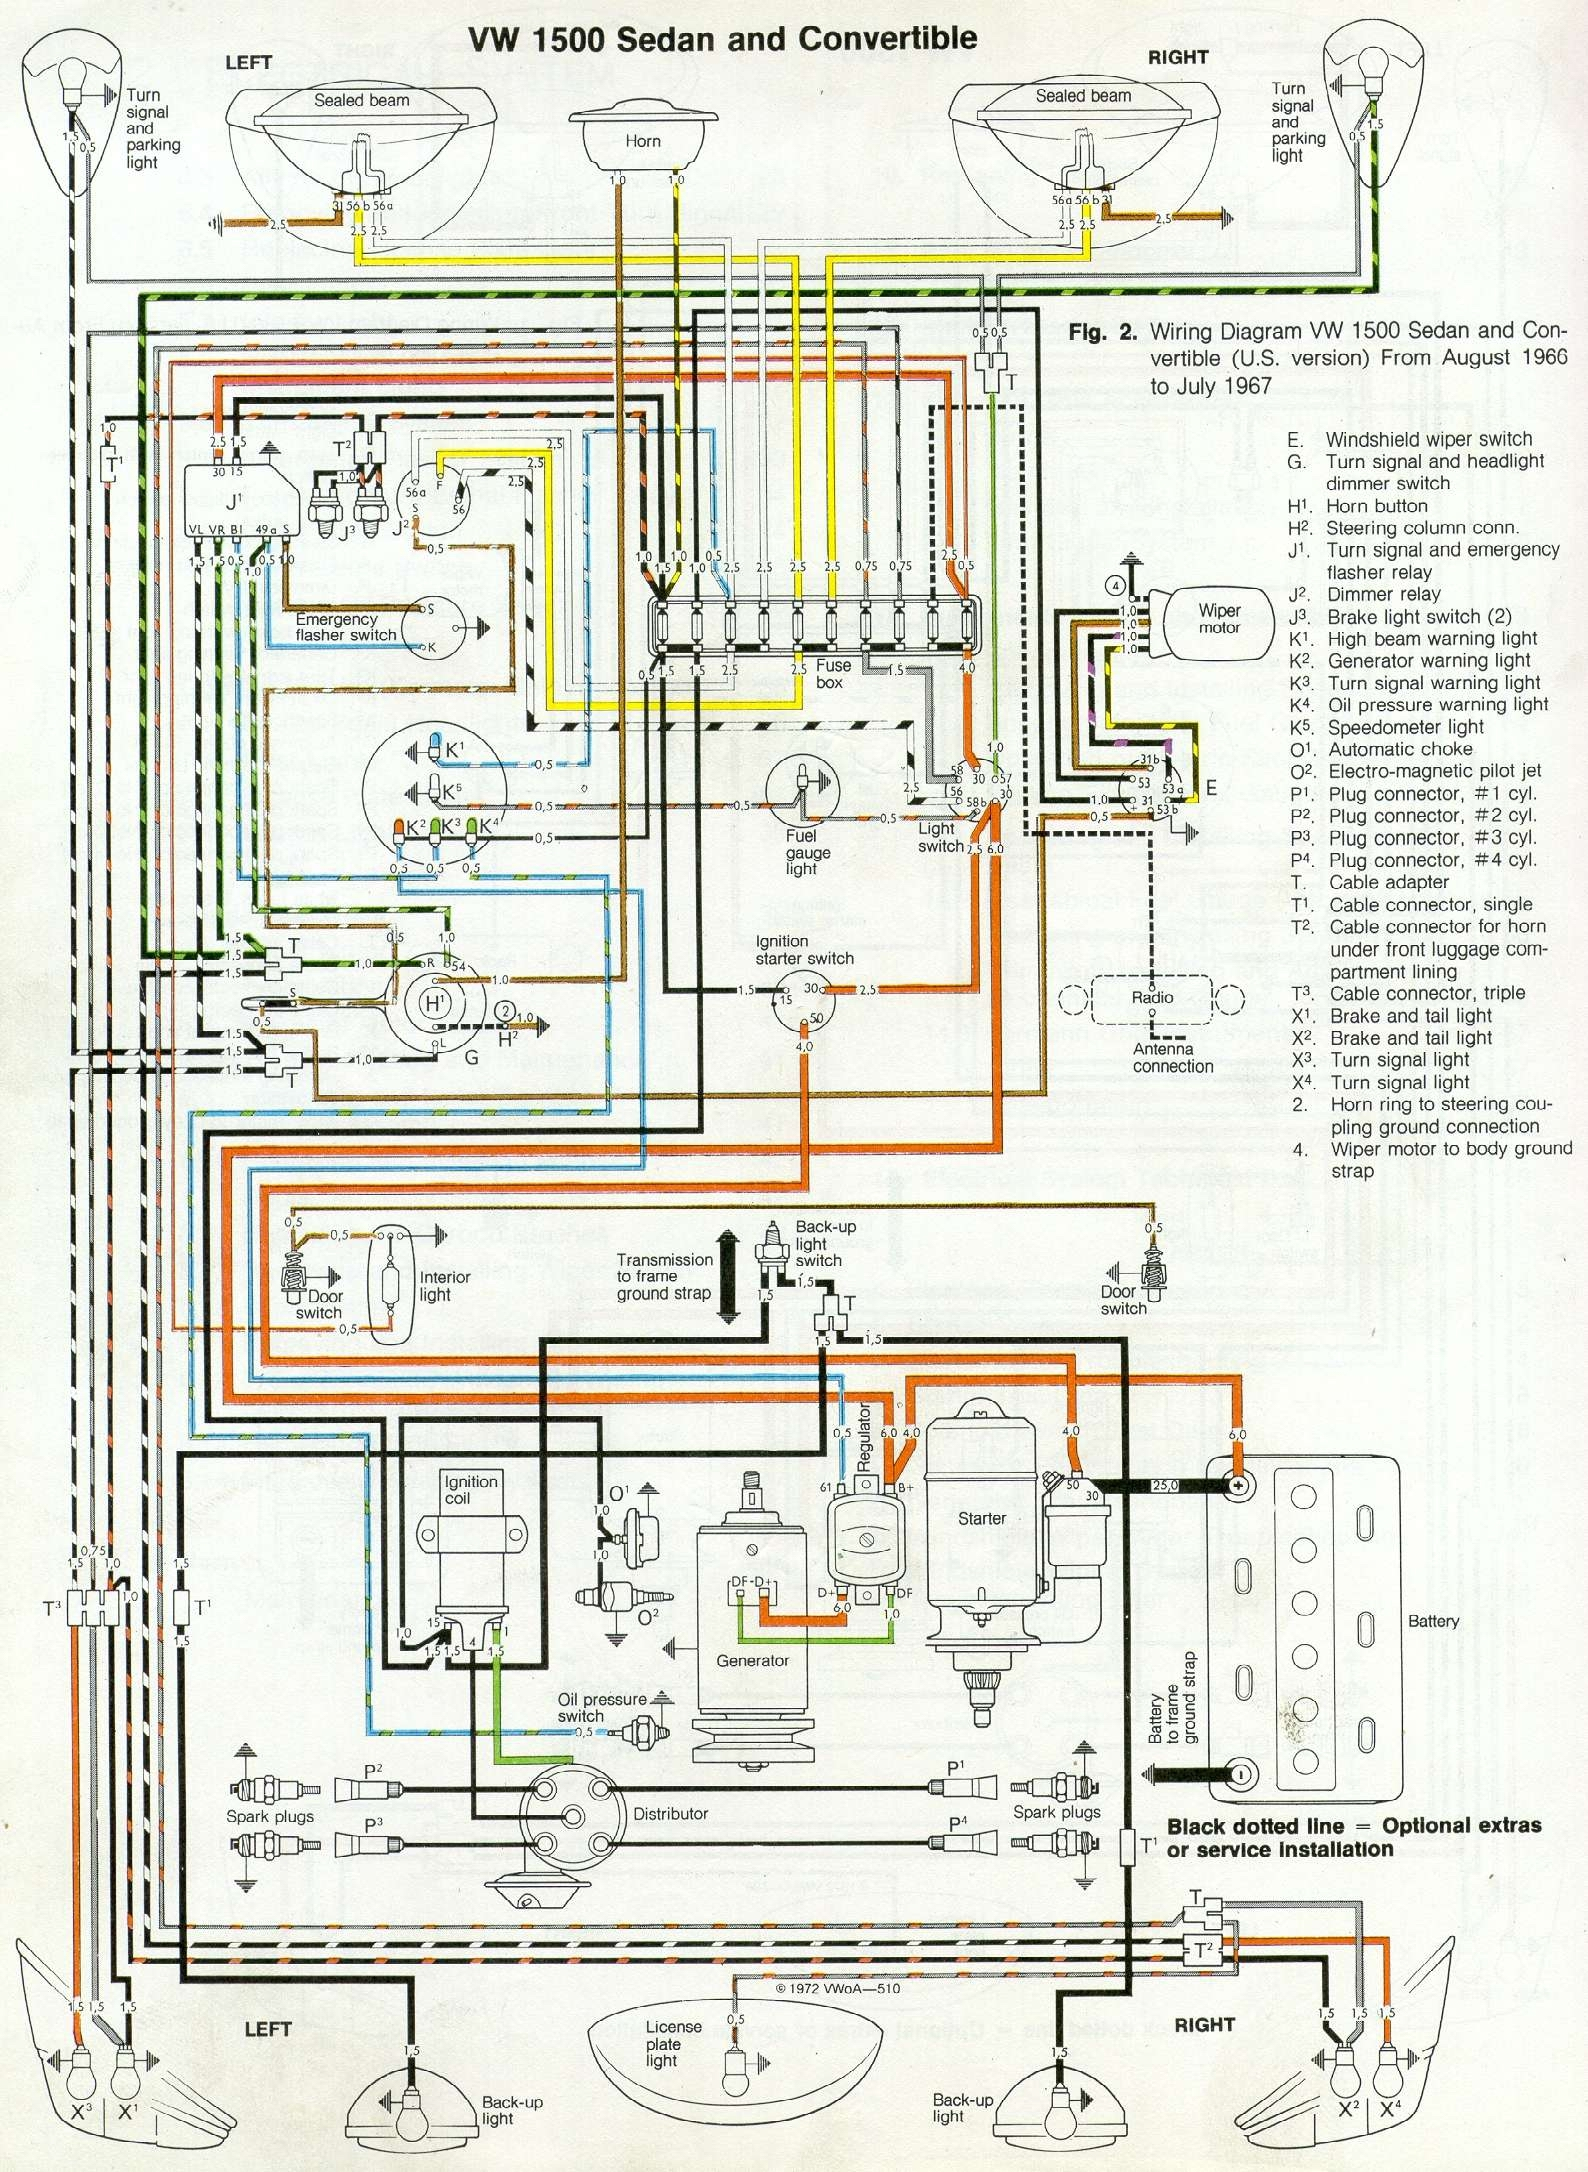 66 and 67 vw beetle wiring diagram 1967 vw beetle rh 1967beetle com 1970 vw beetle tail light wiring diagram 2001 Volkswagen Beetle Wiring Diagram